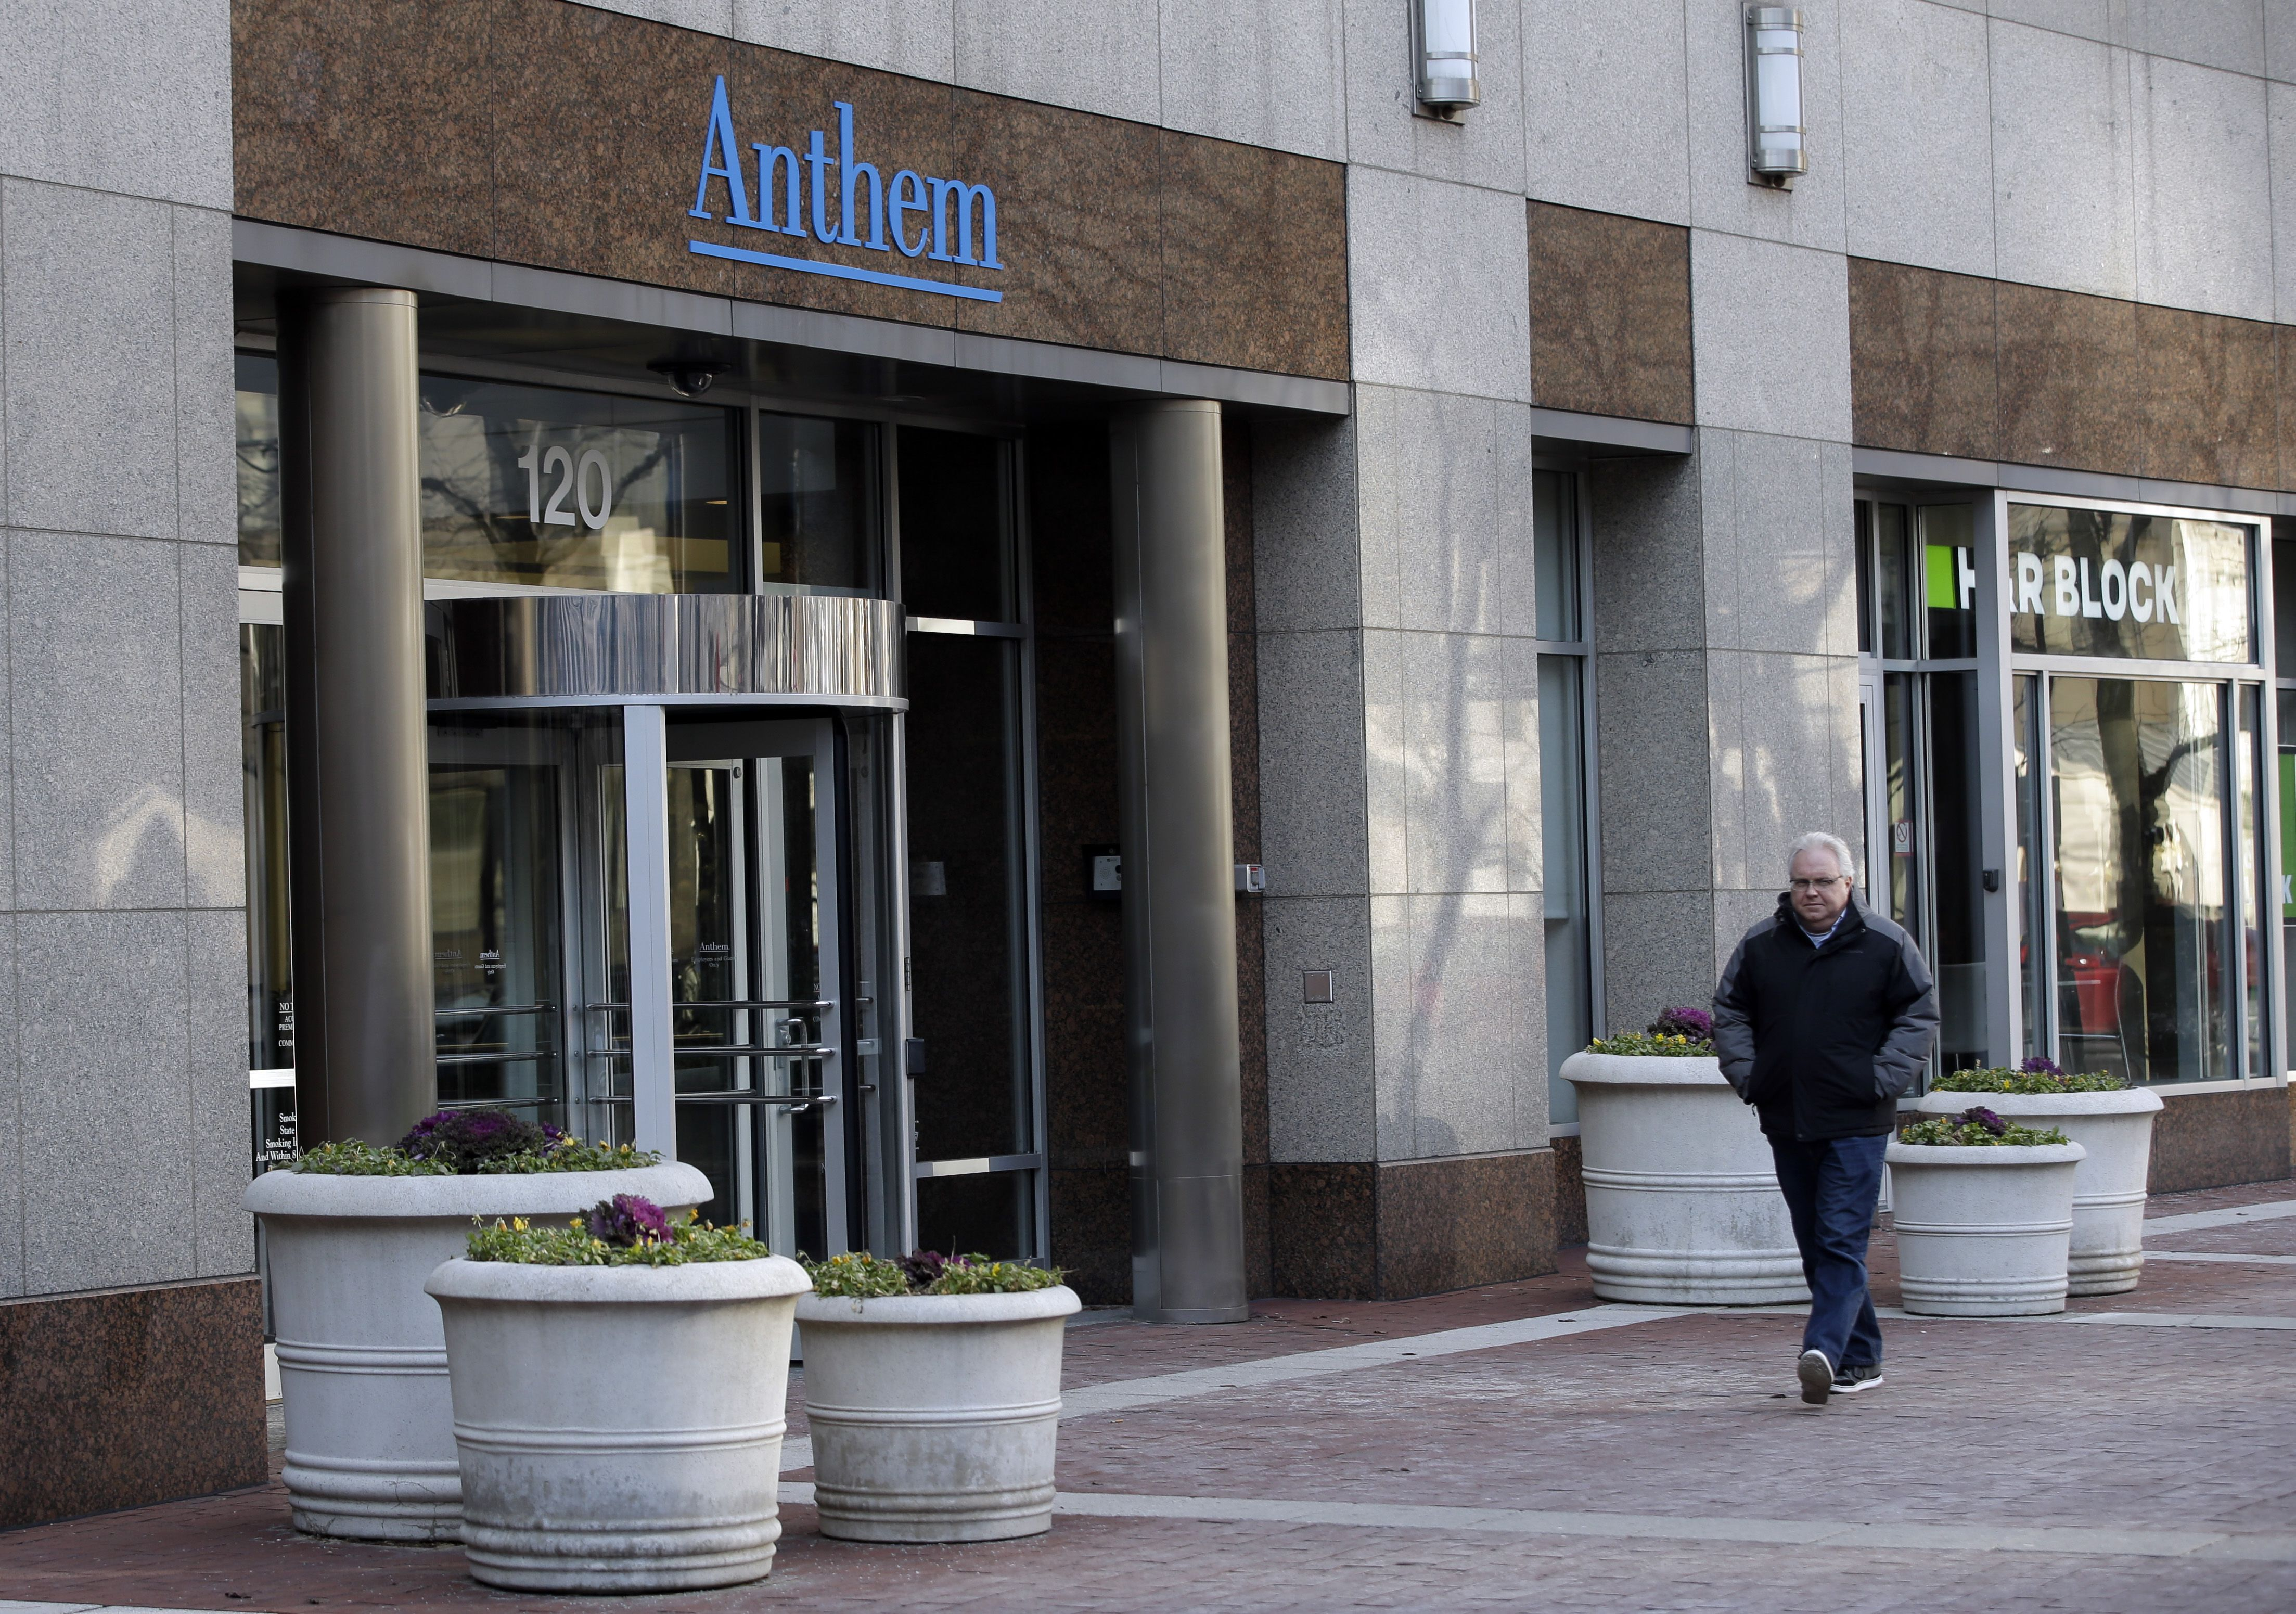 Anthem health insurer building